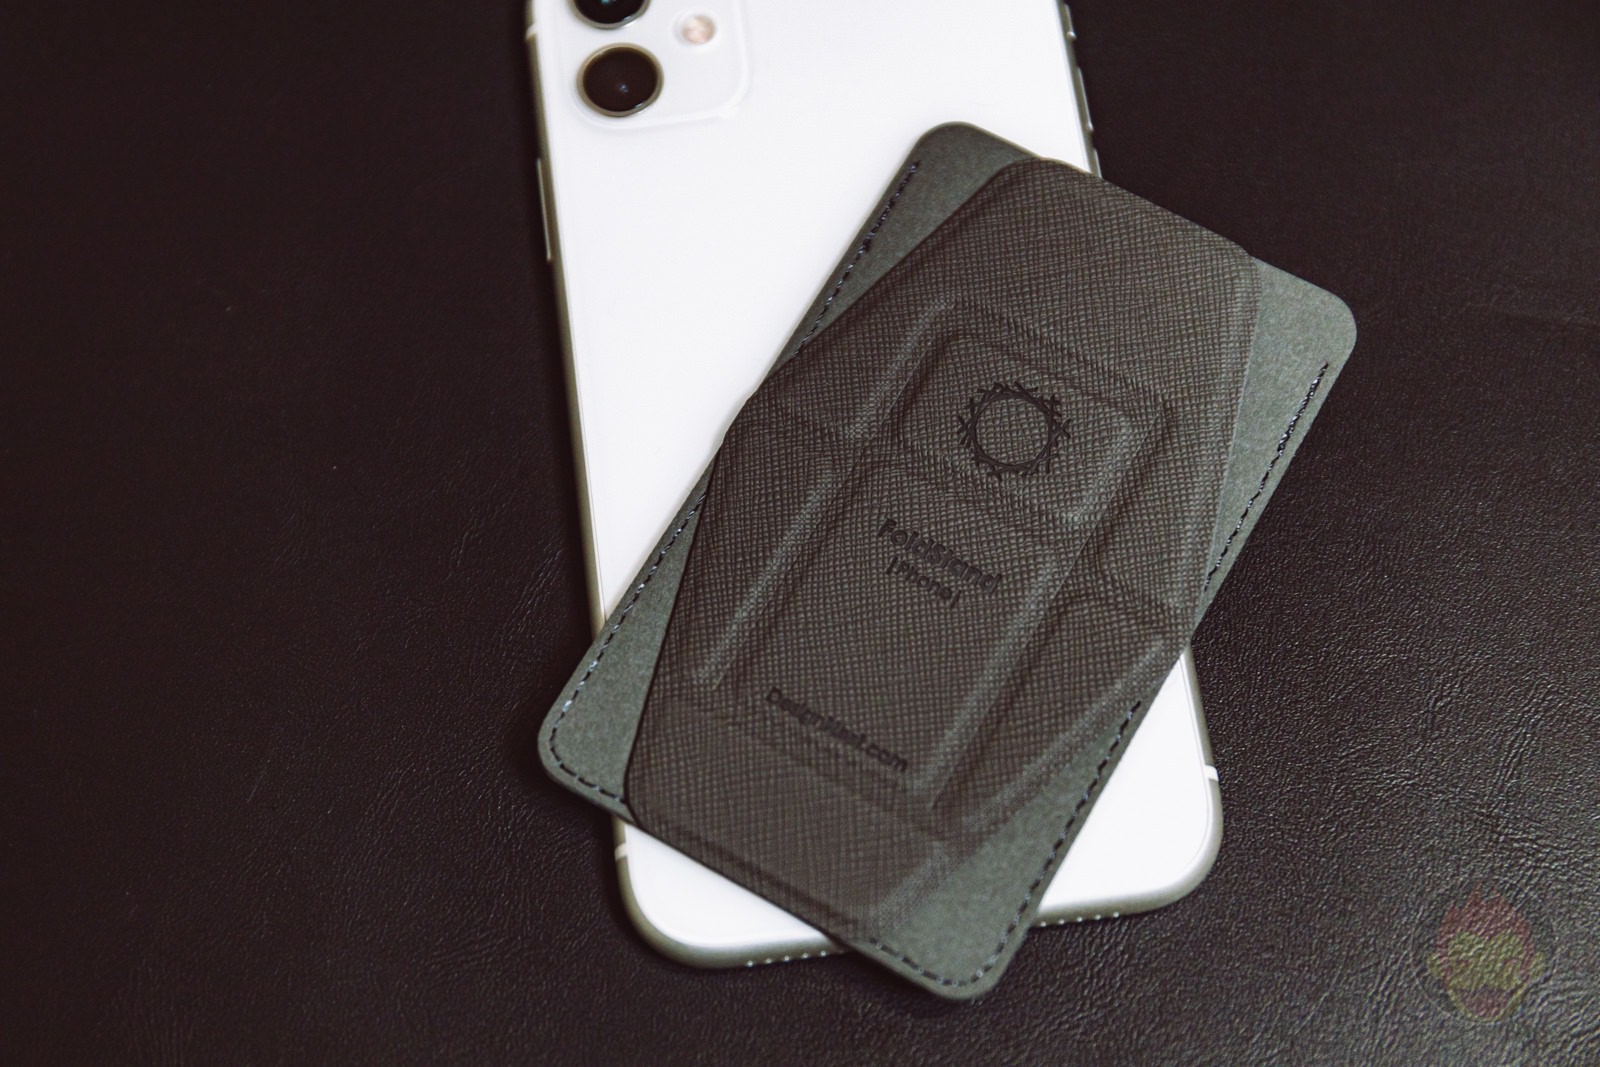 FoldStand Card Case Smartphone Stand Review 15